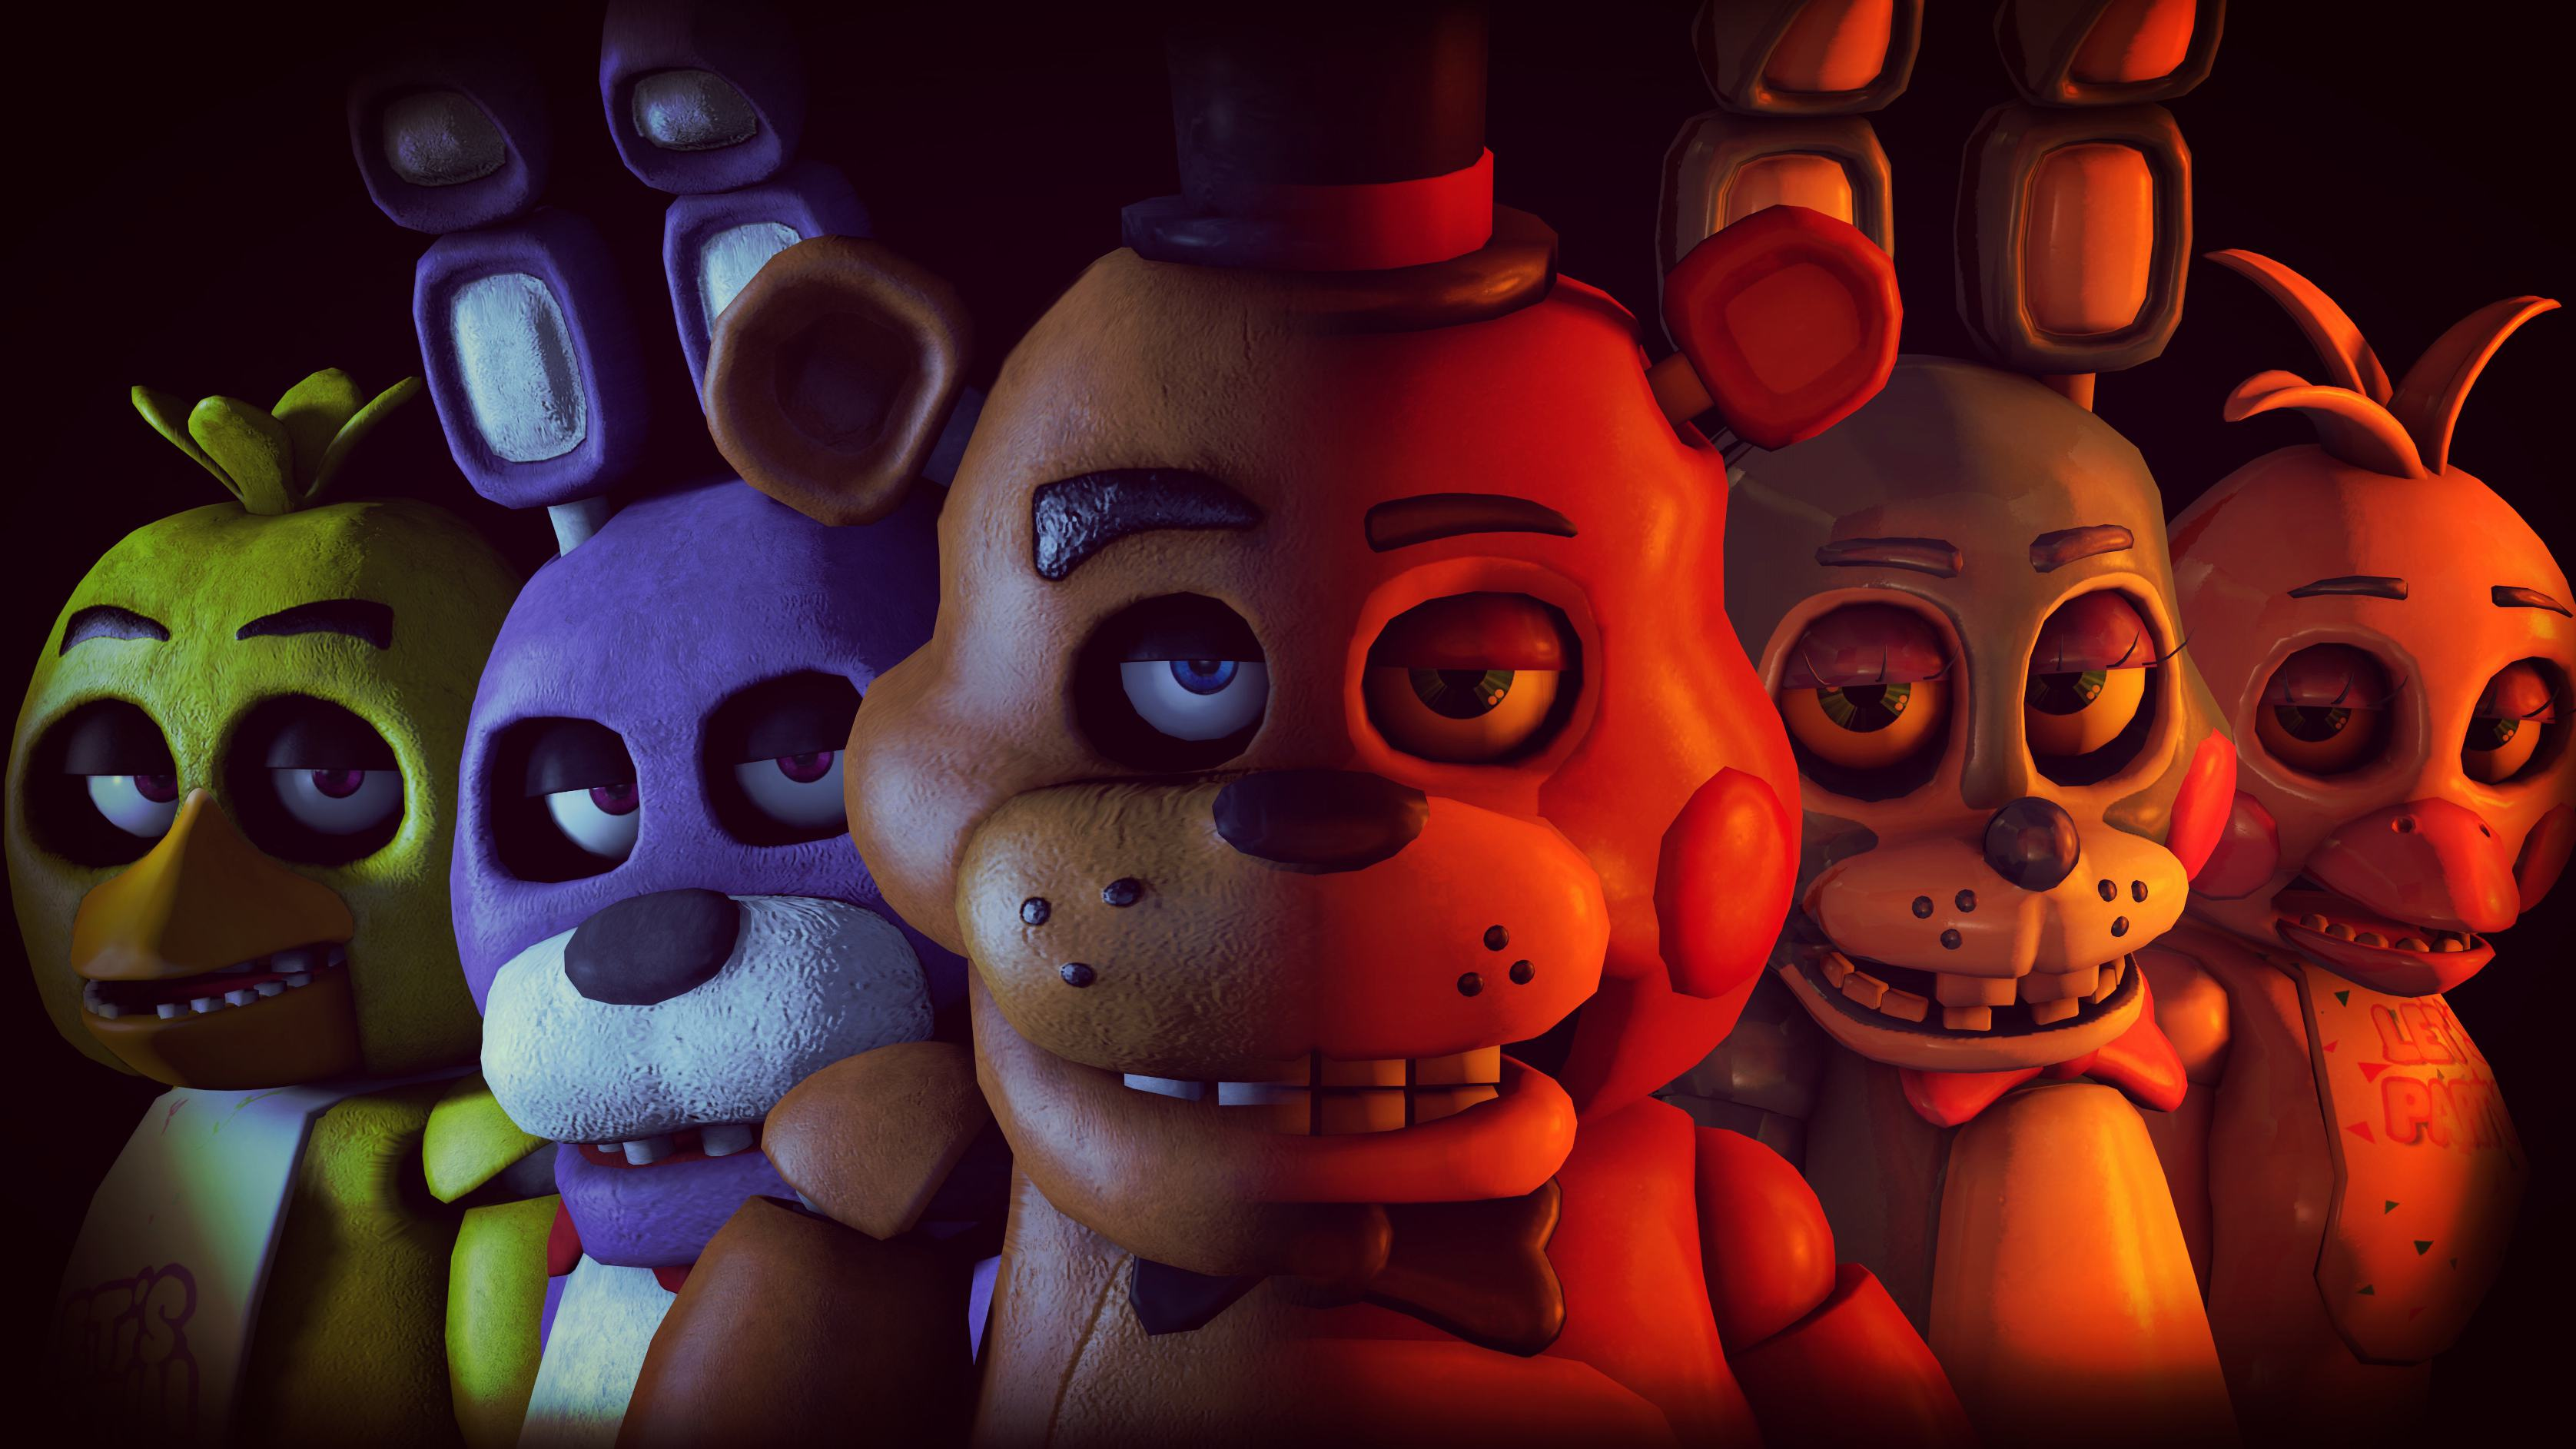 five nights at freddys demo download softonic